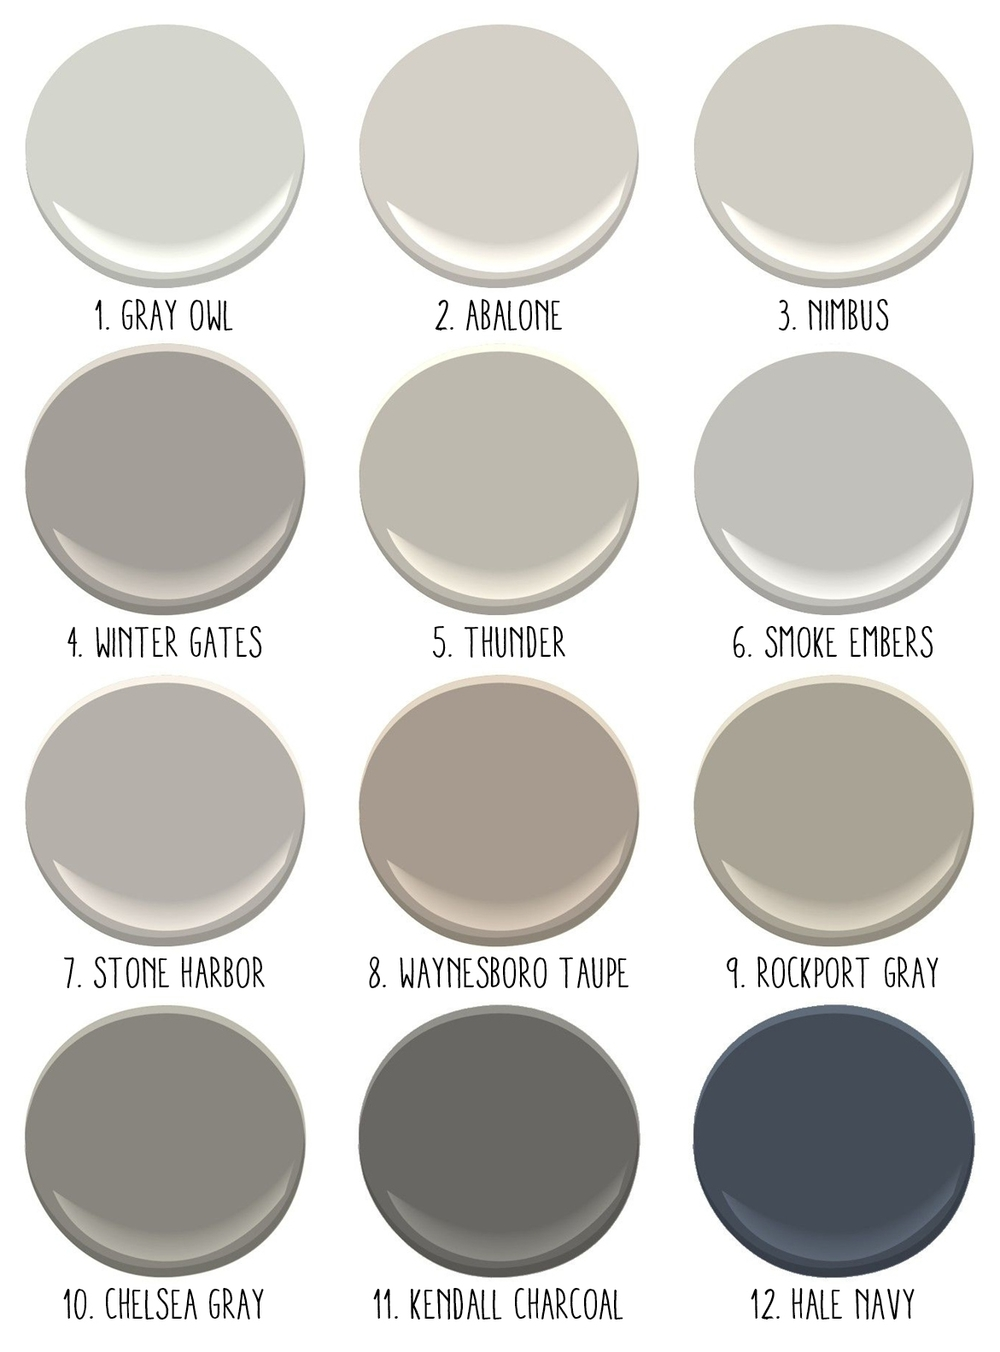 1. Gray Owl- a really pretty light gray. Amanda has this in her house and it looks beautiful; 2. Abalone- another pretty light gray with a touch of brown and lavender; 3. Nimbus- a warm neutral gray; 4. Winter Gates; 5. Thunder; 6. Smoke Embers- nice cool gray with blue tones- looks good with Hale Navy; 7. Stone Harbor; 8. Waynesboro Taupe- this color changes dramatically given the light but is really rich; 9. Rockport Gray- one of Amanda's favorites! ; 10. Chelsea Gray; 11. Kendall Charcoal; 12. Hale Navy- a stunning navy that works as a great rich alternative to a charcoal or black